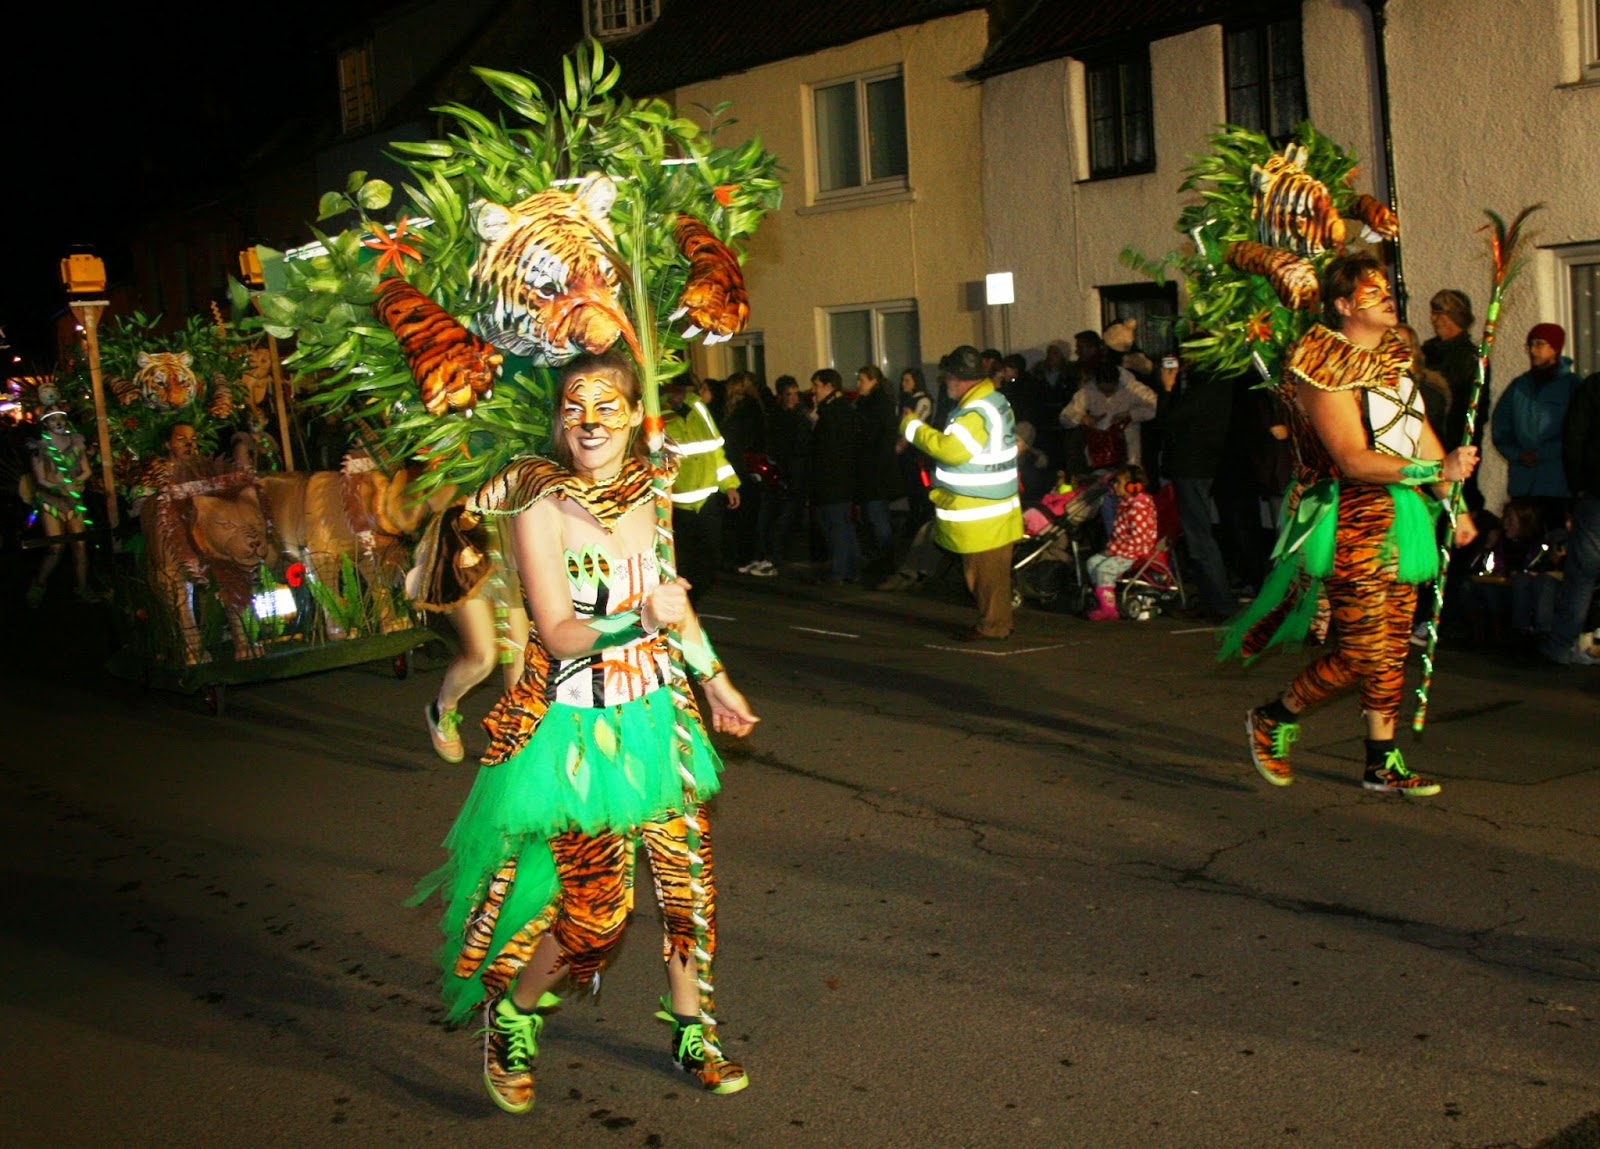 Somerset Carnival Season 2014 - Xtreme Carnival Club with 'Hear Me Roar'